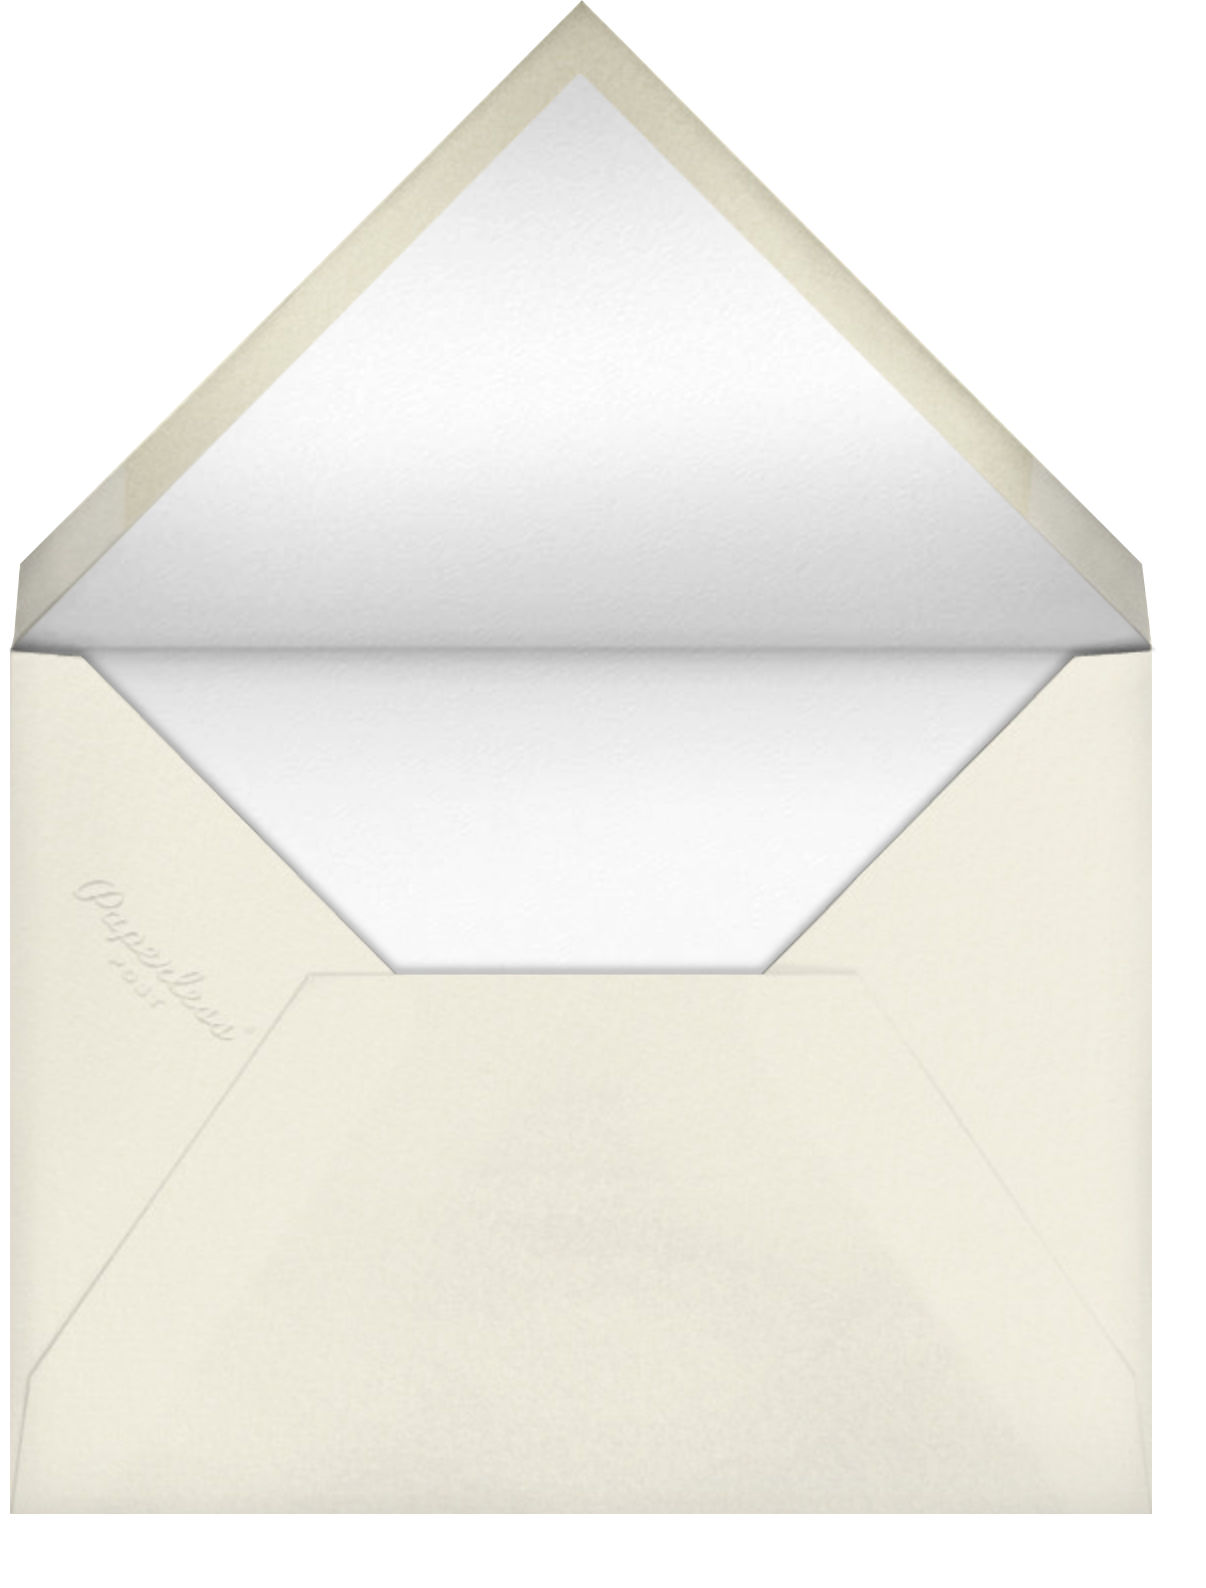 Stella and Dot Scarf - White - Paperless Post - Envelope